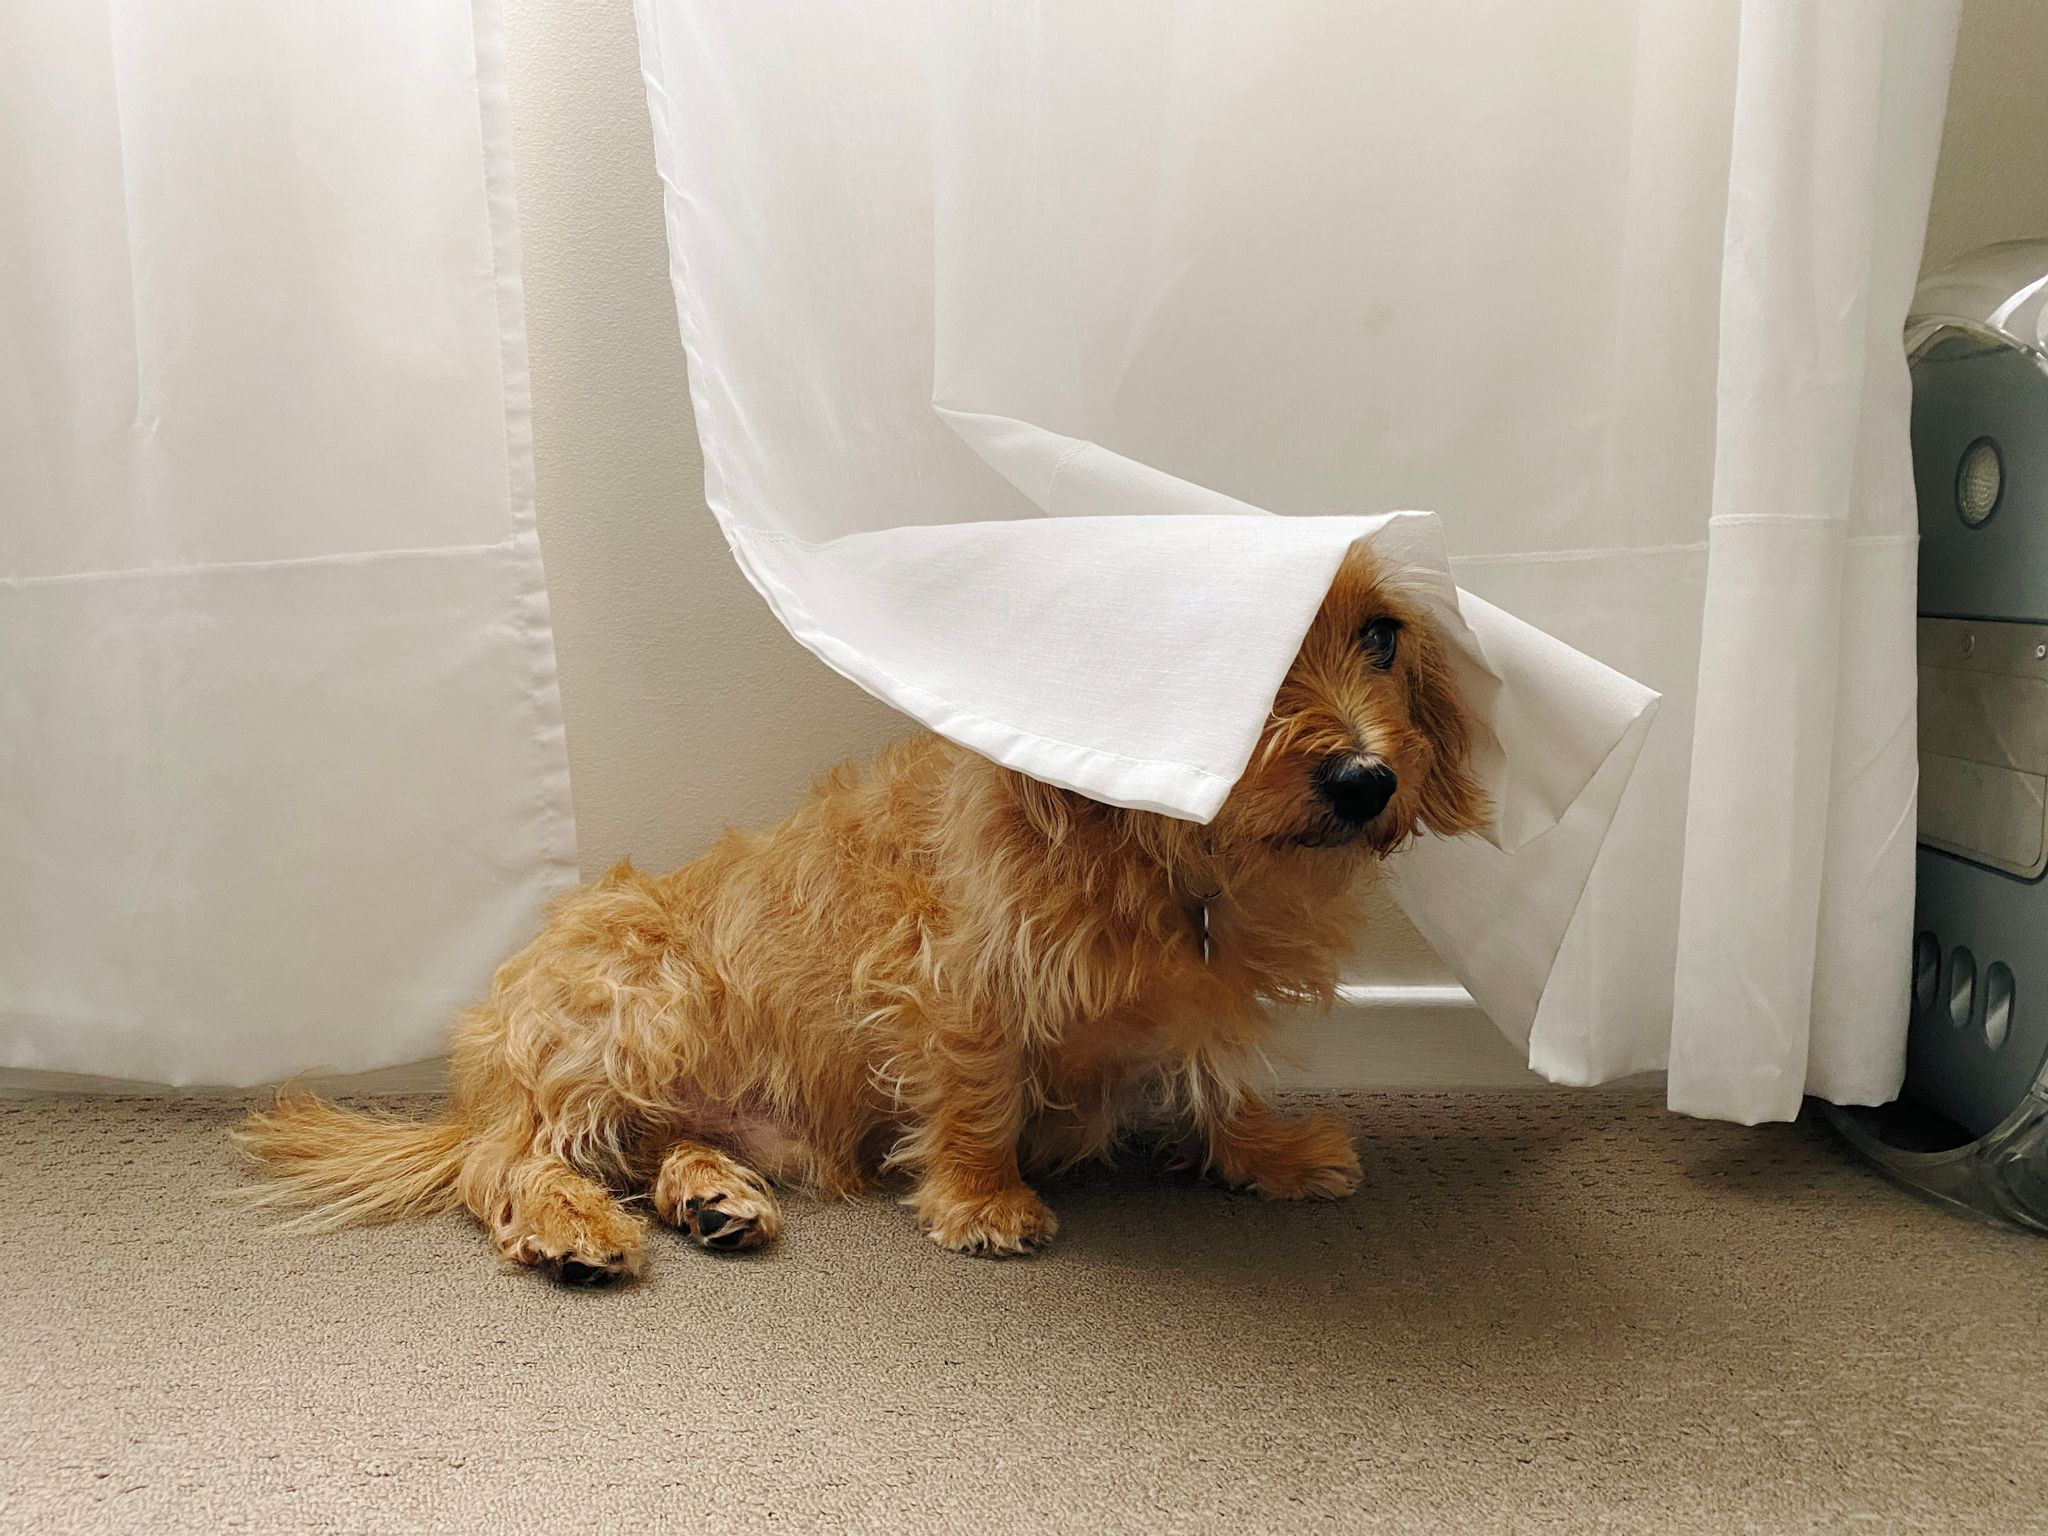 A photo of a small scruffy blonde dog sitting with his head under a sheer white curtain.